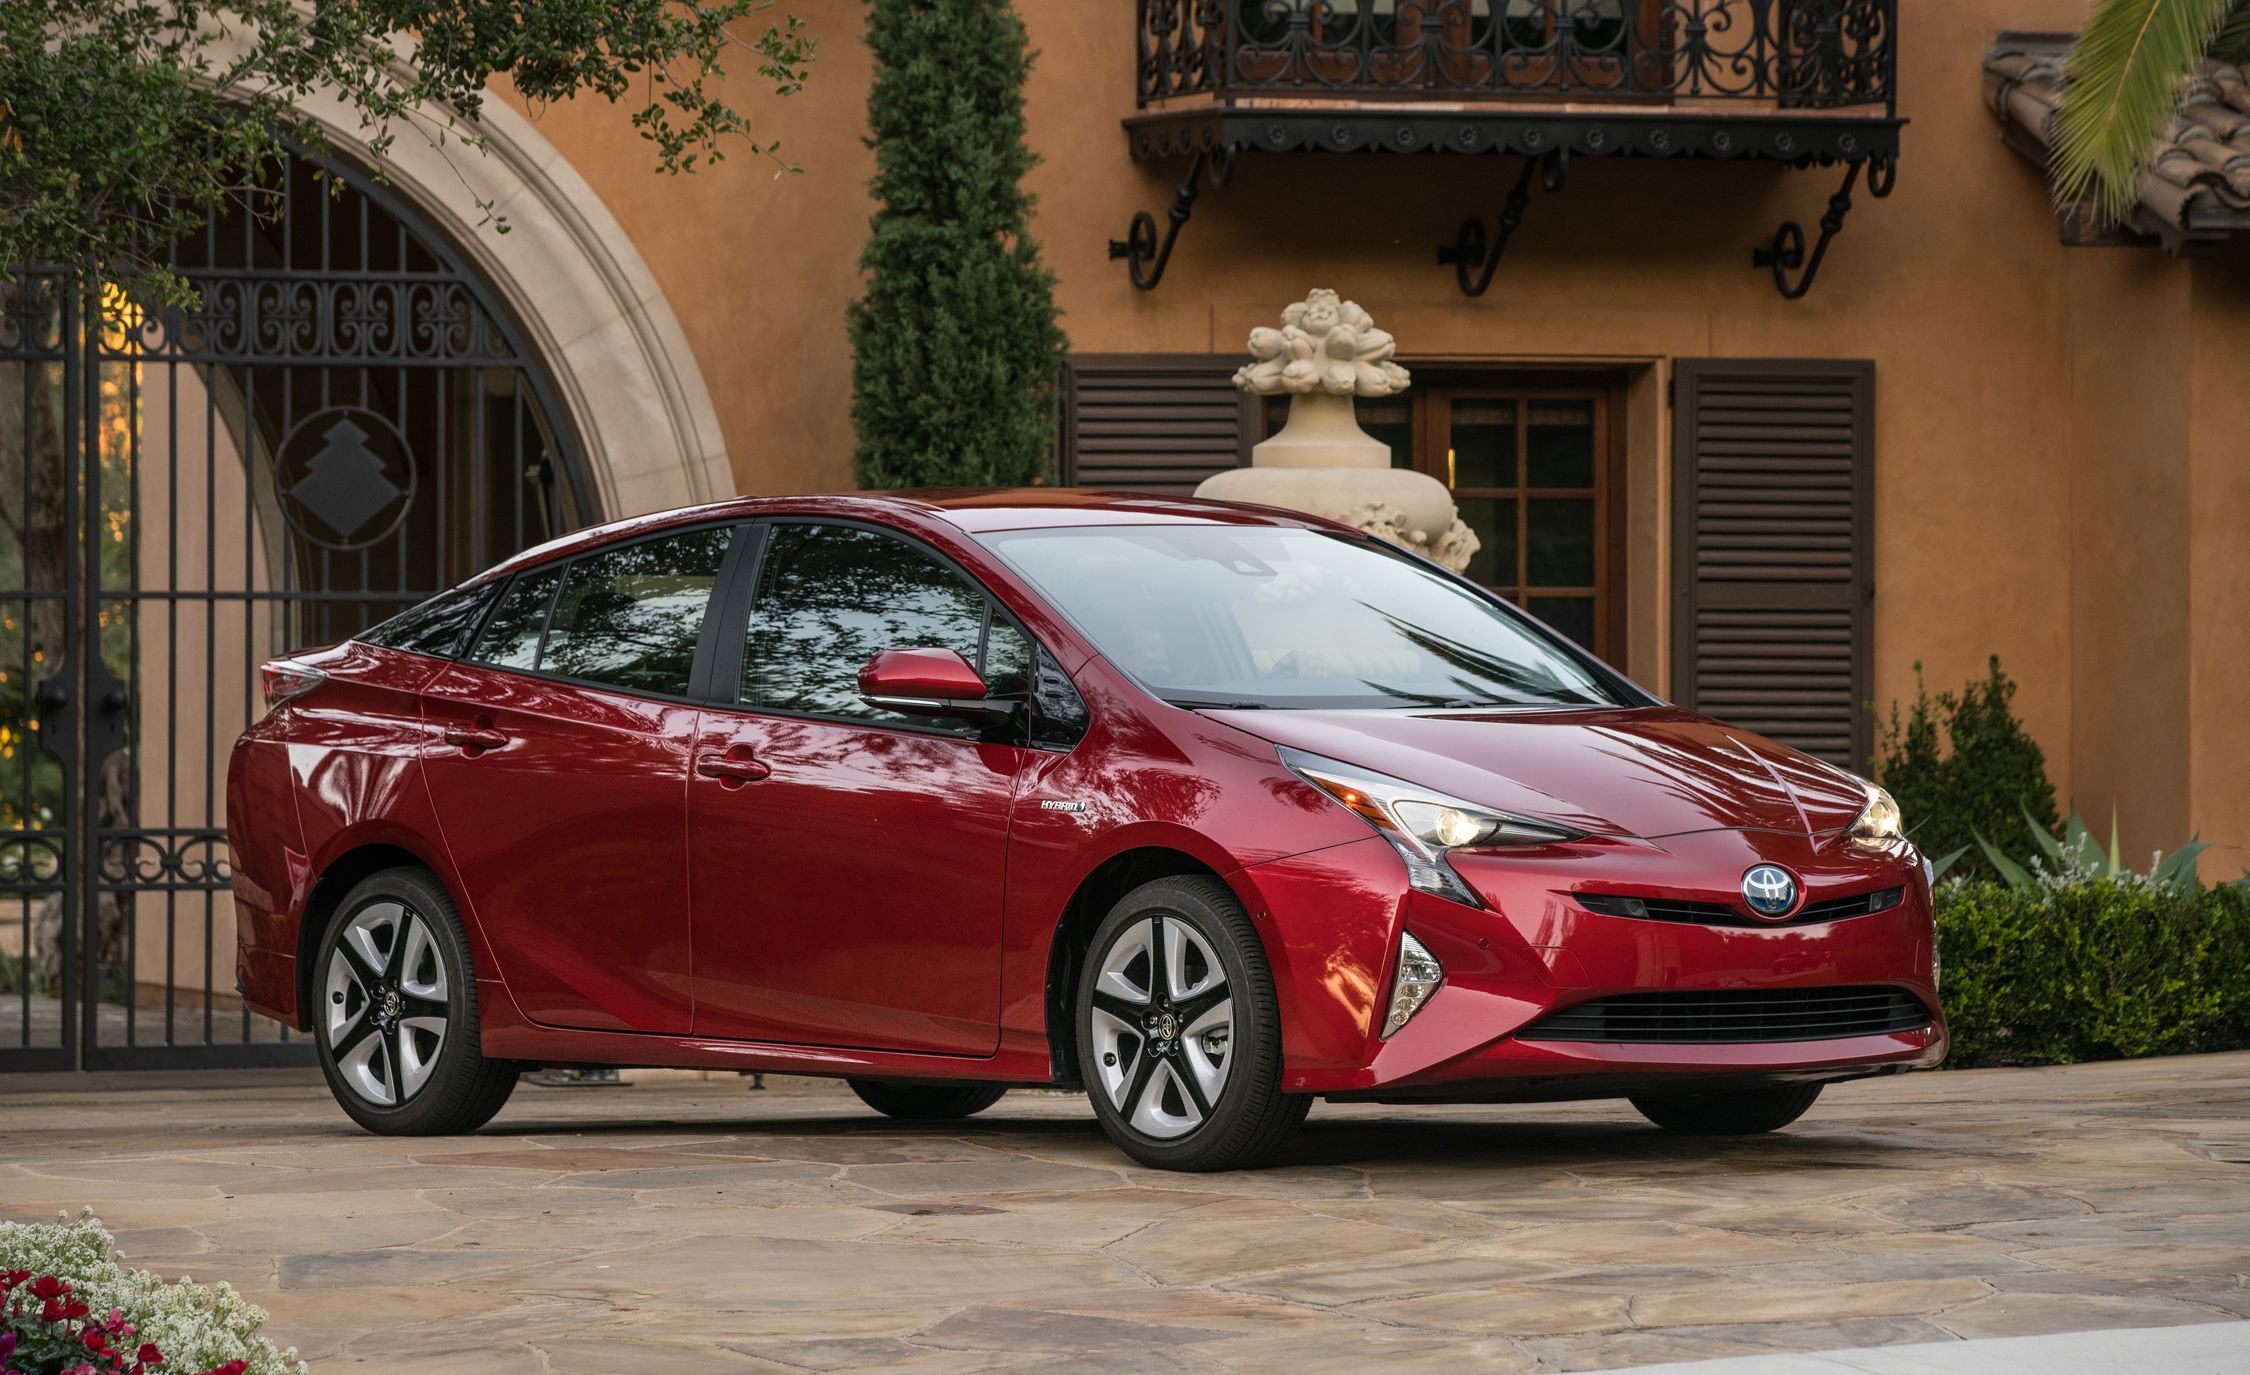 5 Things You Should Know About the All New 2016 Toyota Prius